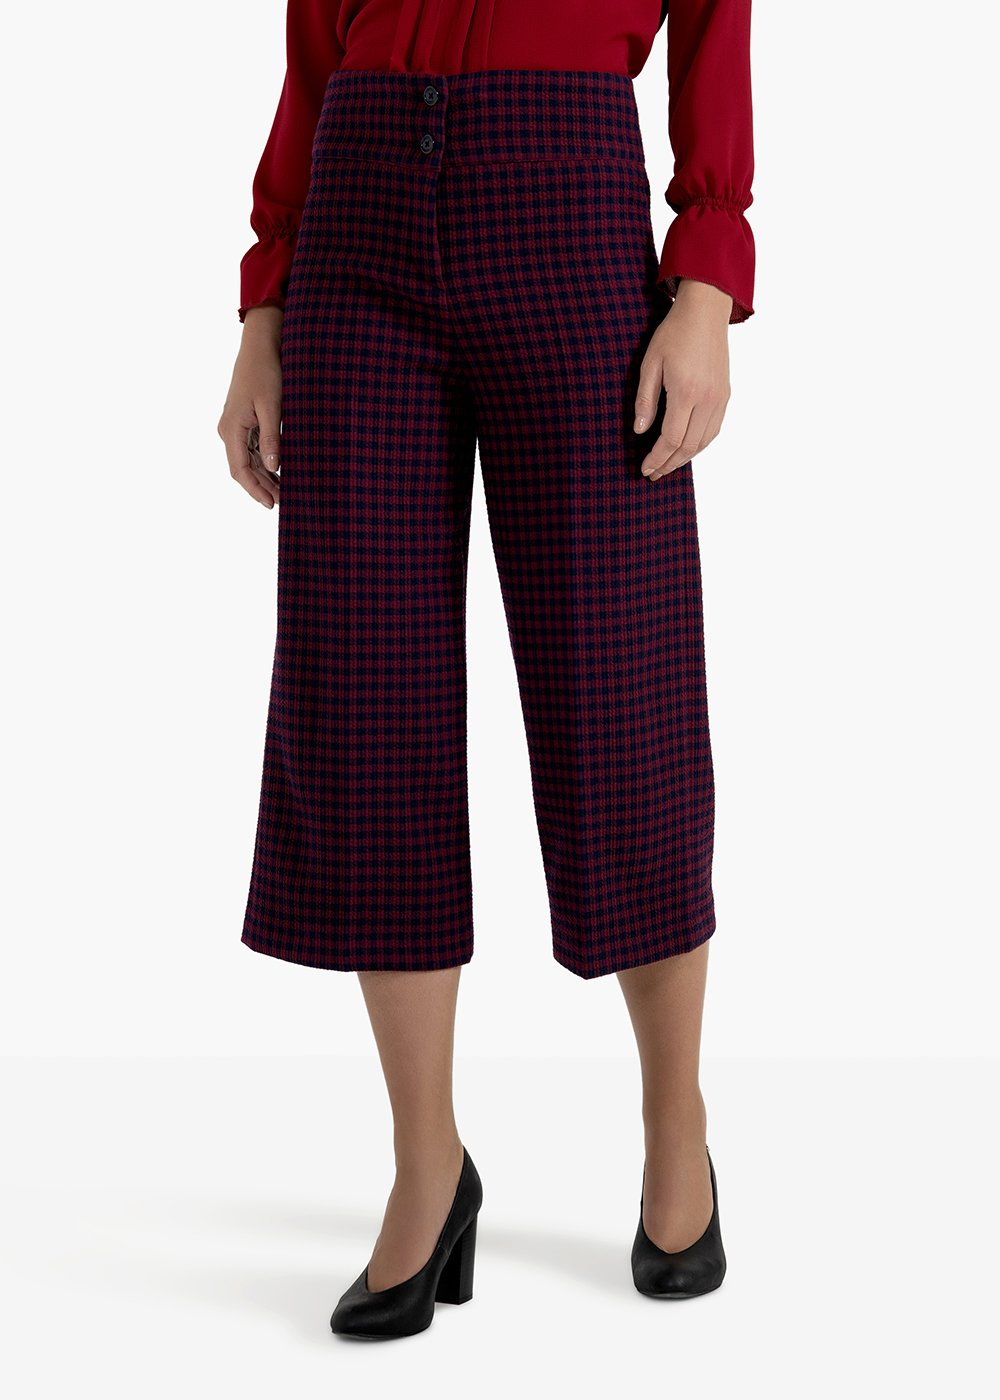 Piquet palazzo trousers with a short fit and a micro-check pattern - Bordeaux /  Blue Fantasia - Woman